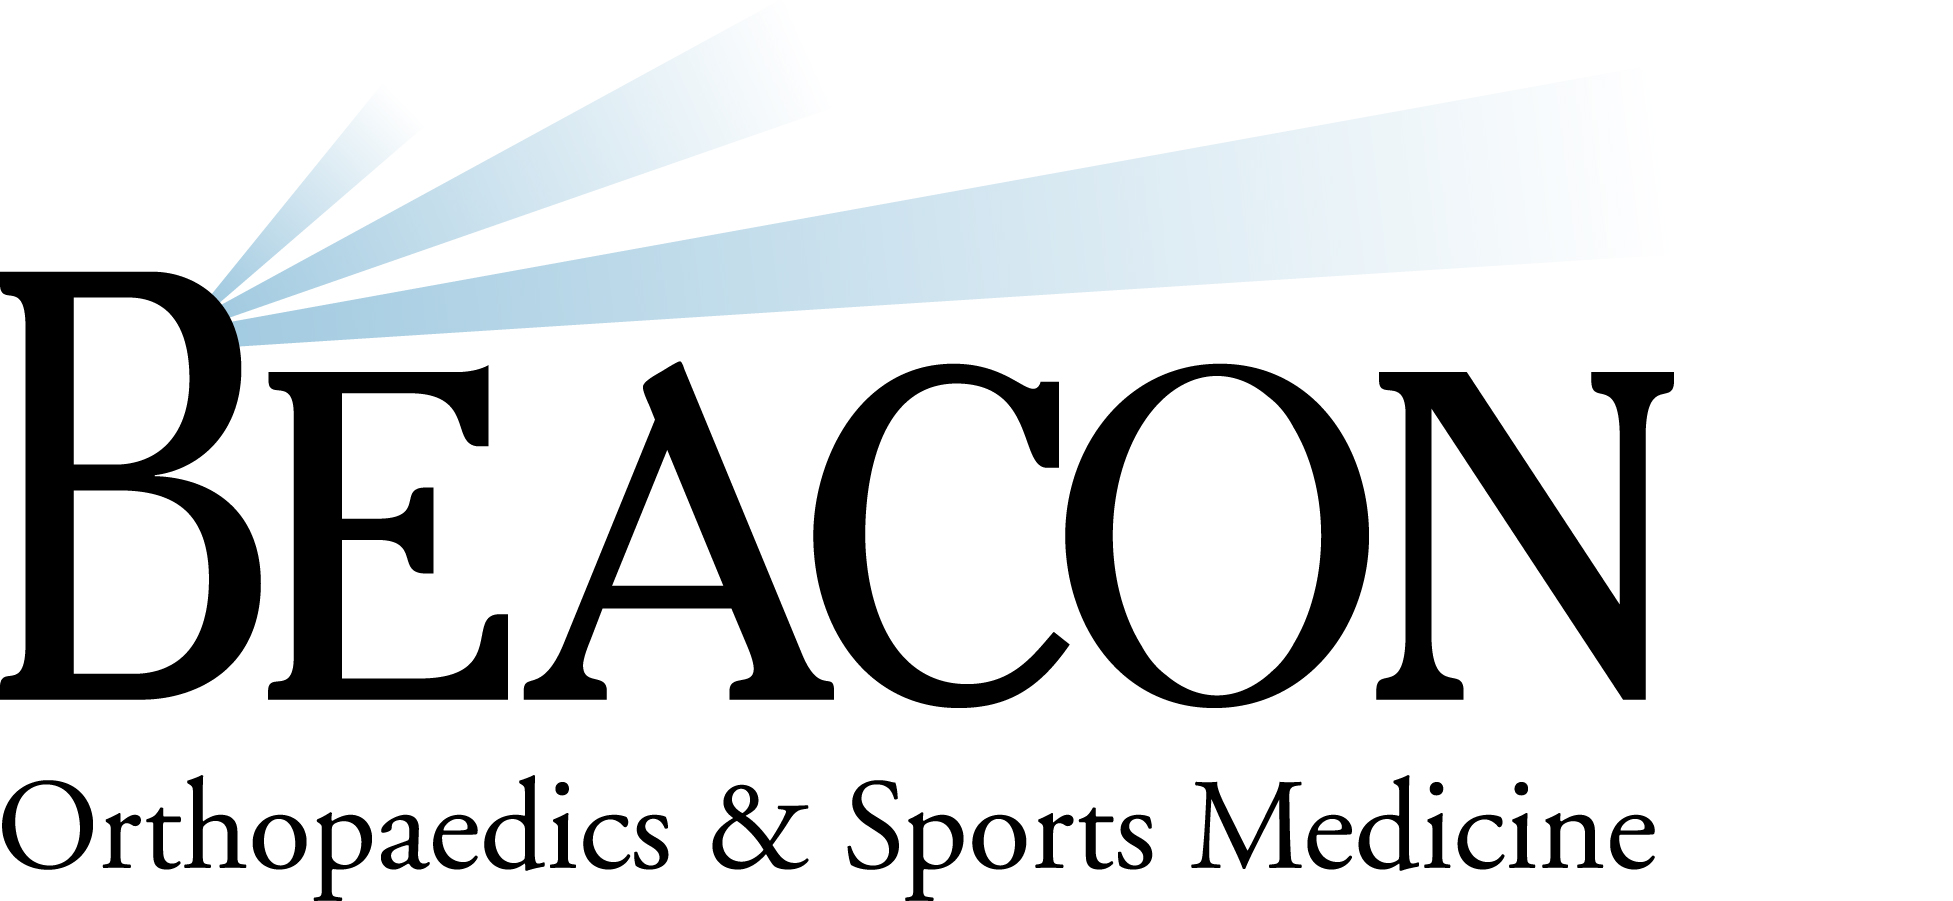 Beacon_Logo.jpg